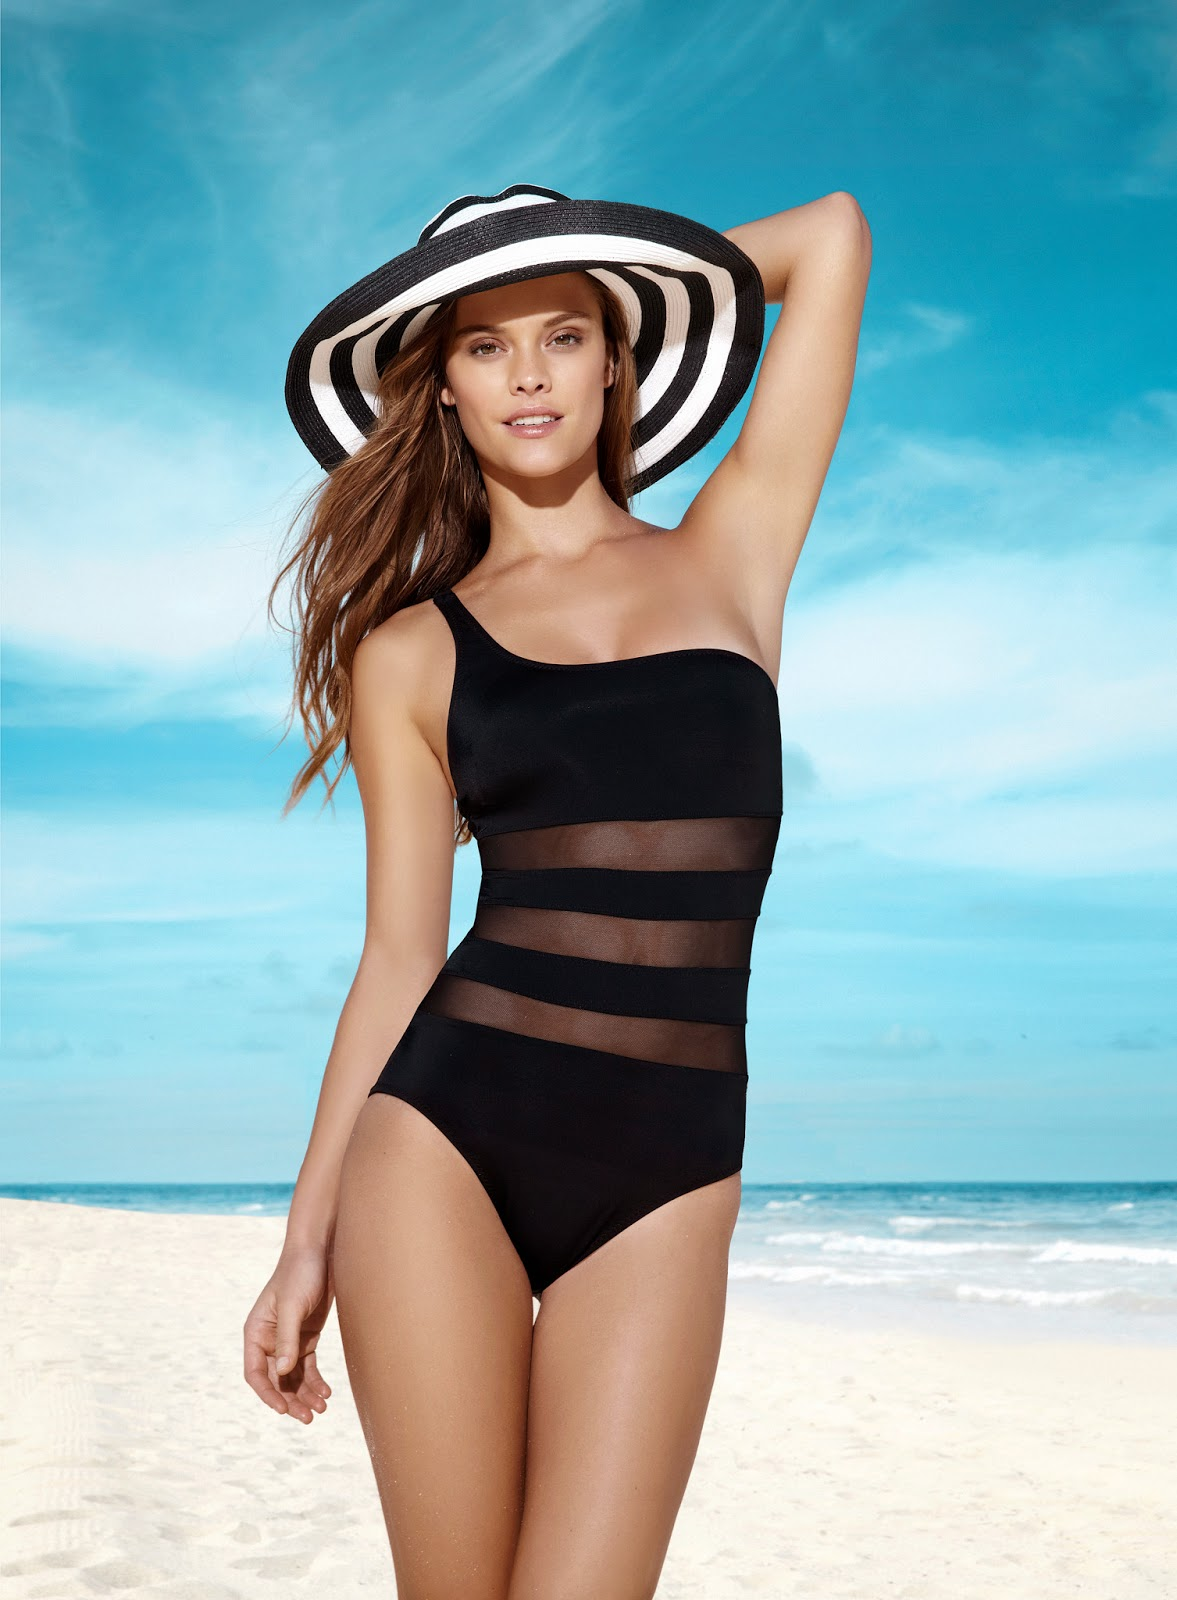 The Khoongboon swimwear store offers the limitless sportswear, activewear, and the most attractive bikini to make you feel beyond beautiful in swimsuits. So buy your favorite bikini & swimwear at a cheap price. Coolest collection of activewear is ready to make you more fashionable.